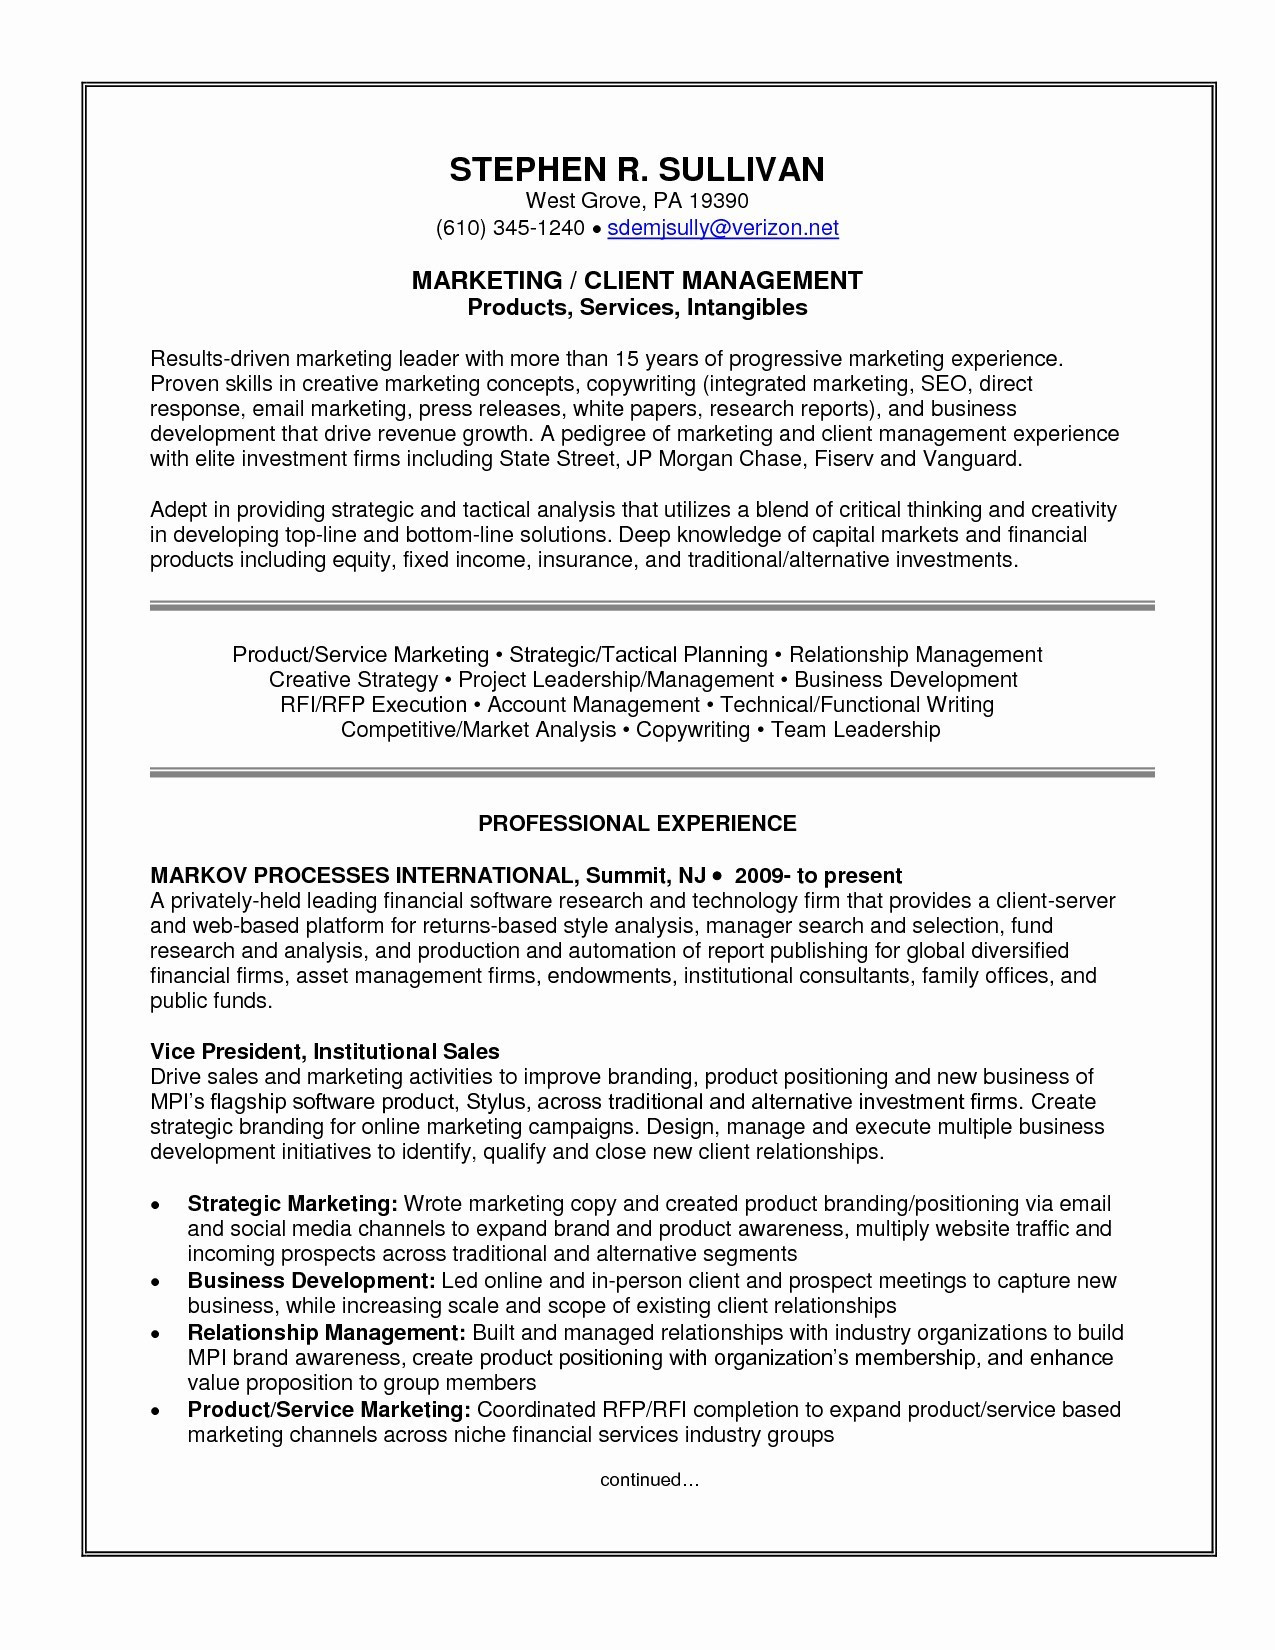 Traditional Resume Template - Experienced Professional Resume Template Best top Resume Template